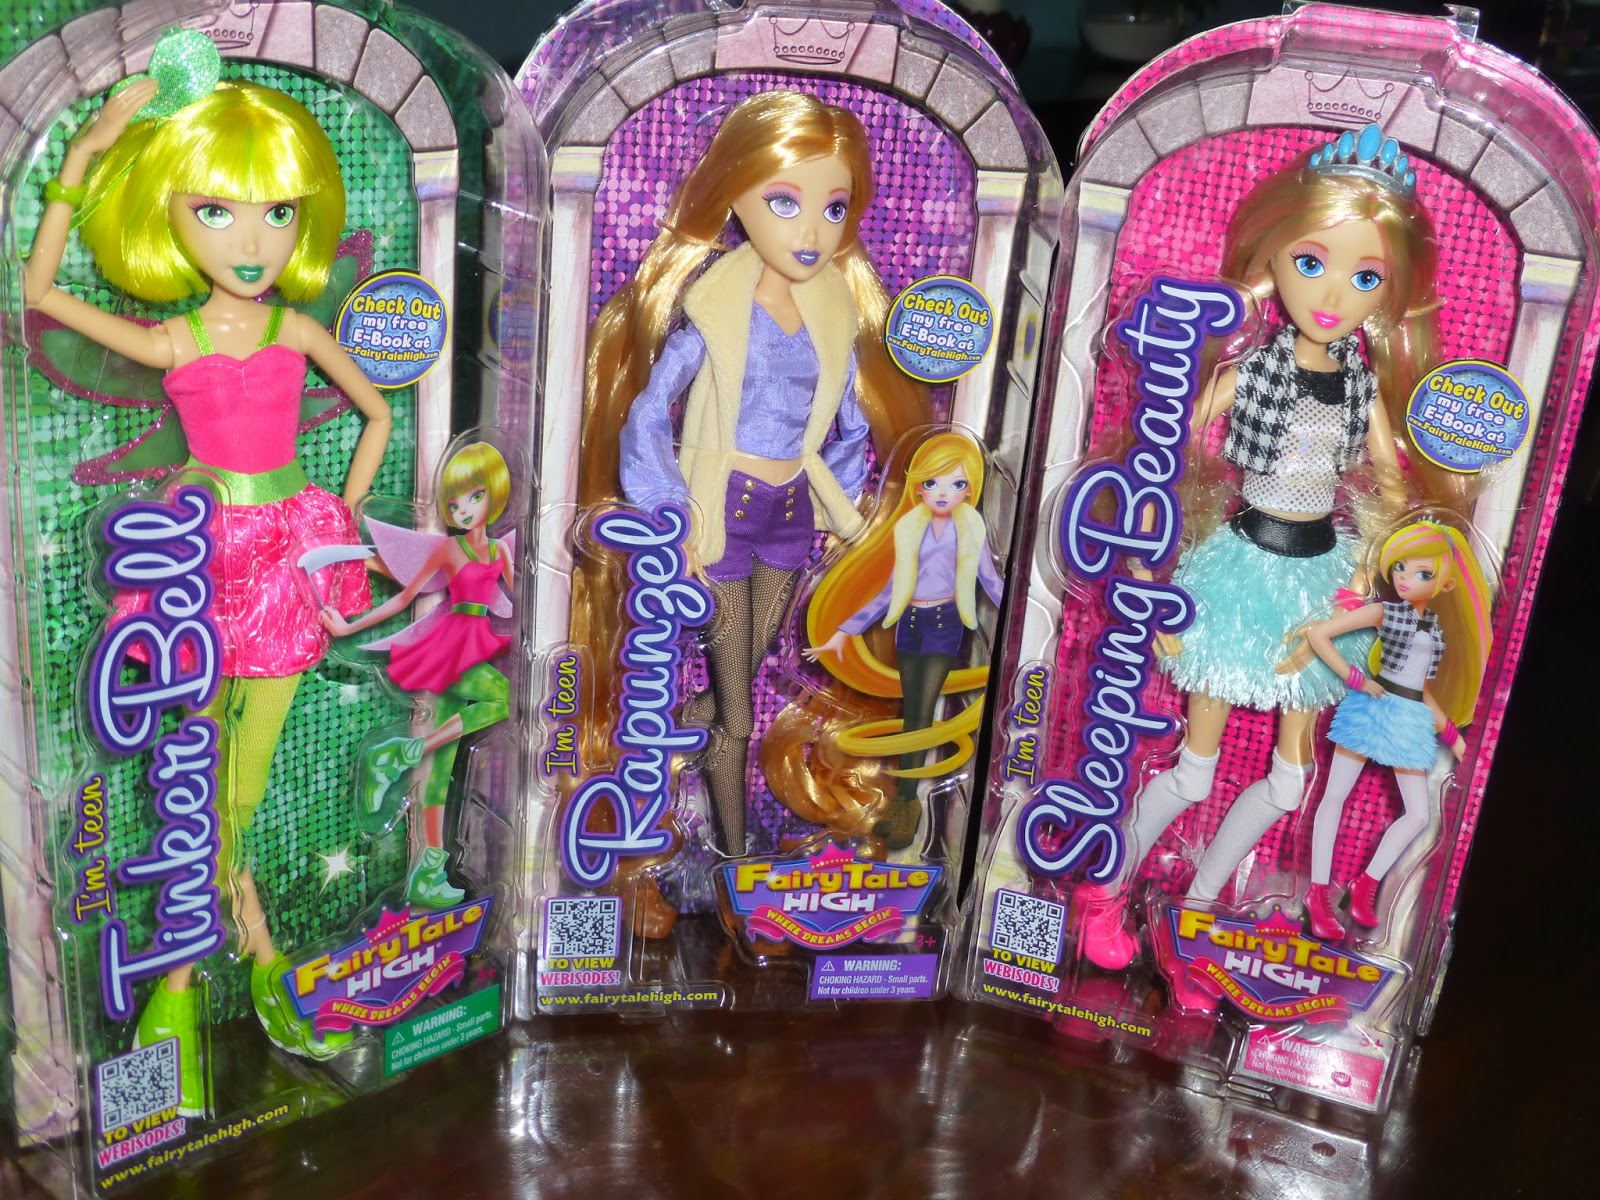 Bratz Kidz Fairy Tales Dolls The gallery for -->...